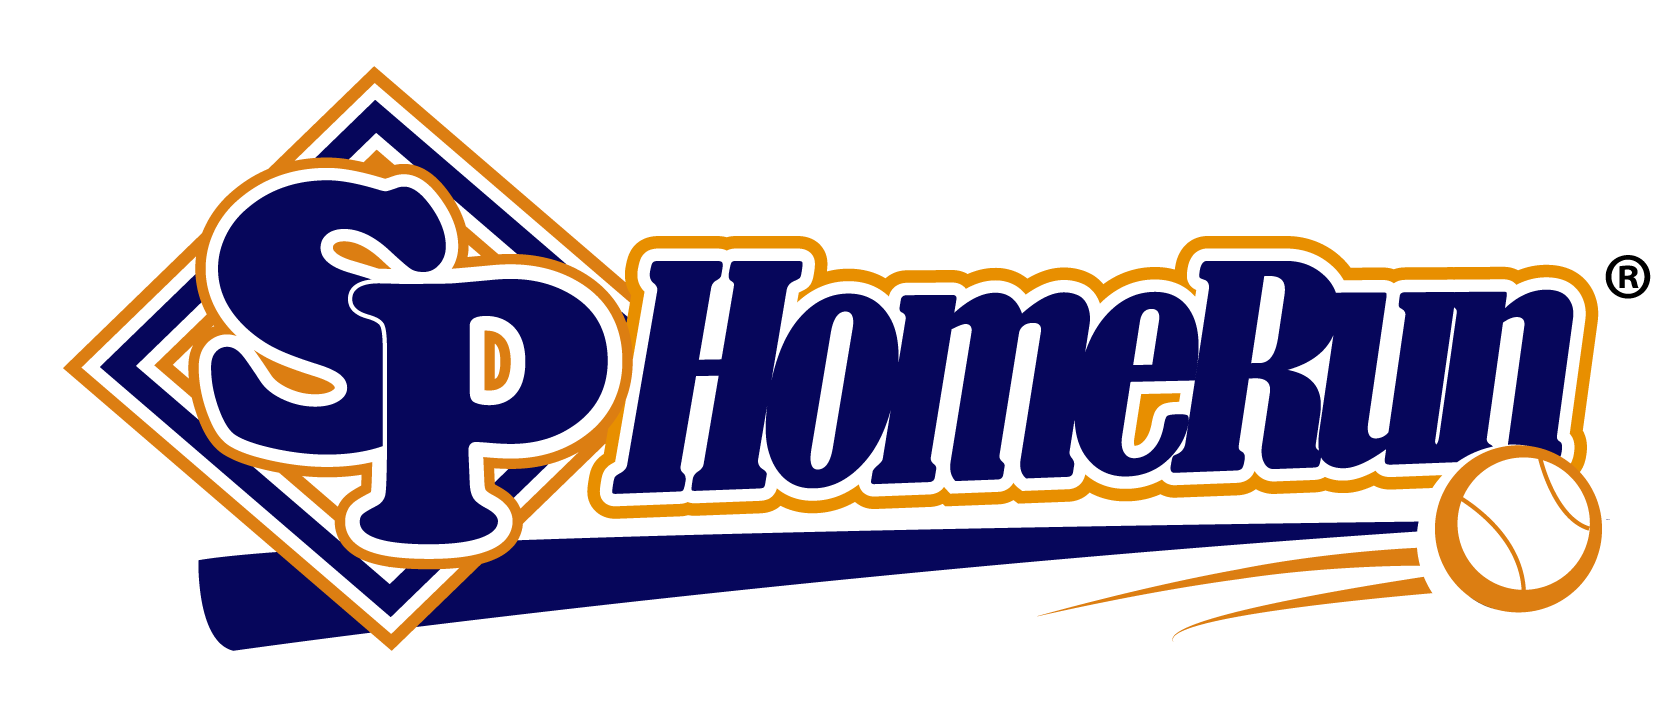 SP Home Run is a registered trademark of SP Home Run Inc.